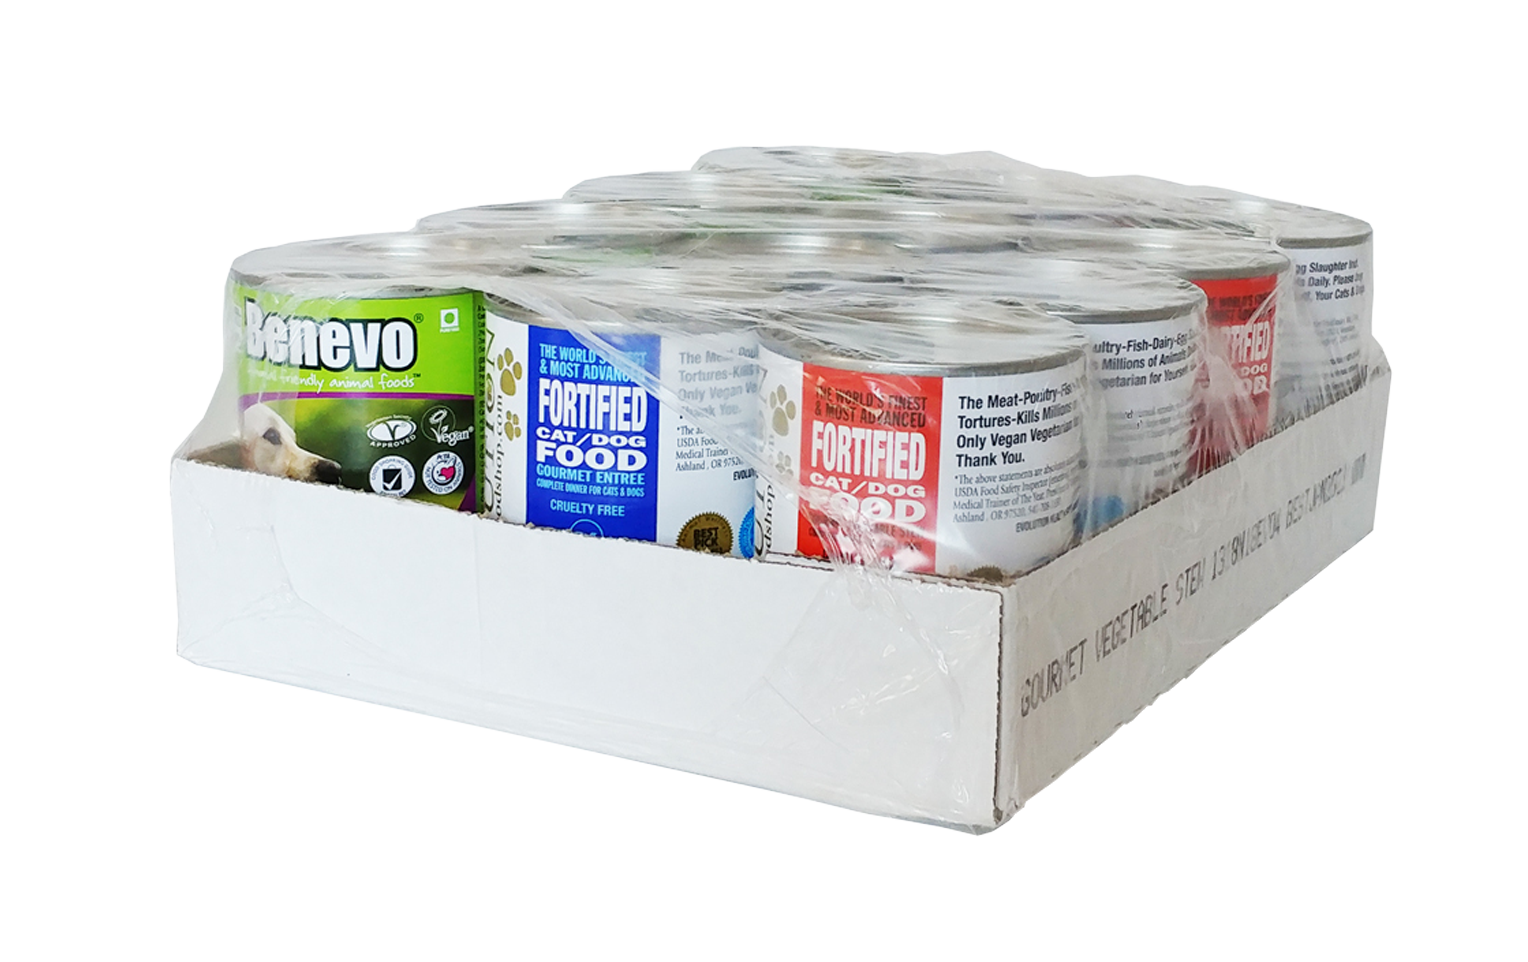 Benevo Duo - Complete Food for Cats and Dogs - Case of 12 cans